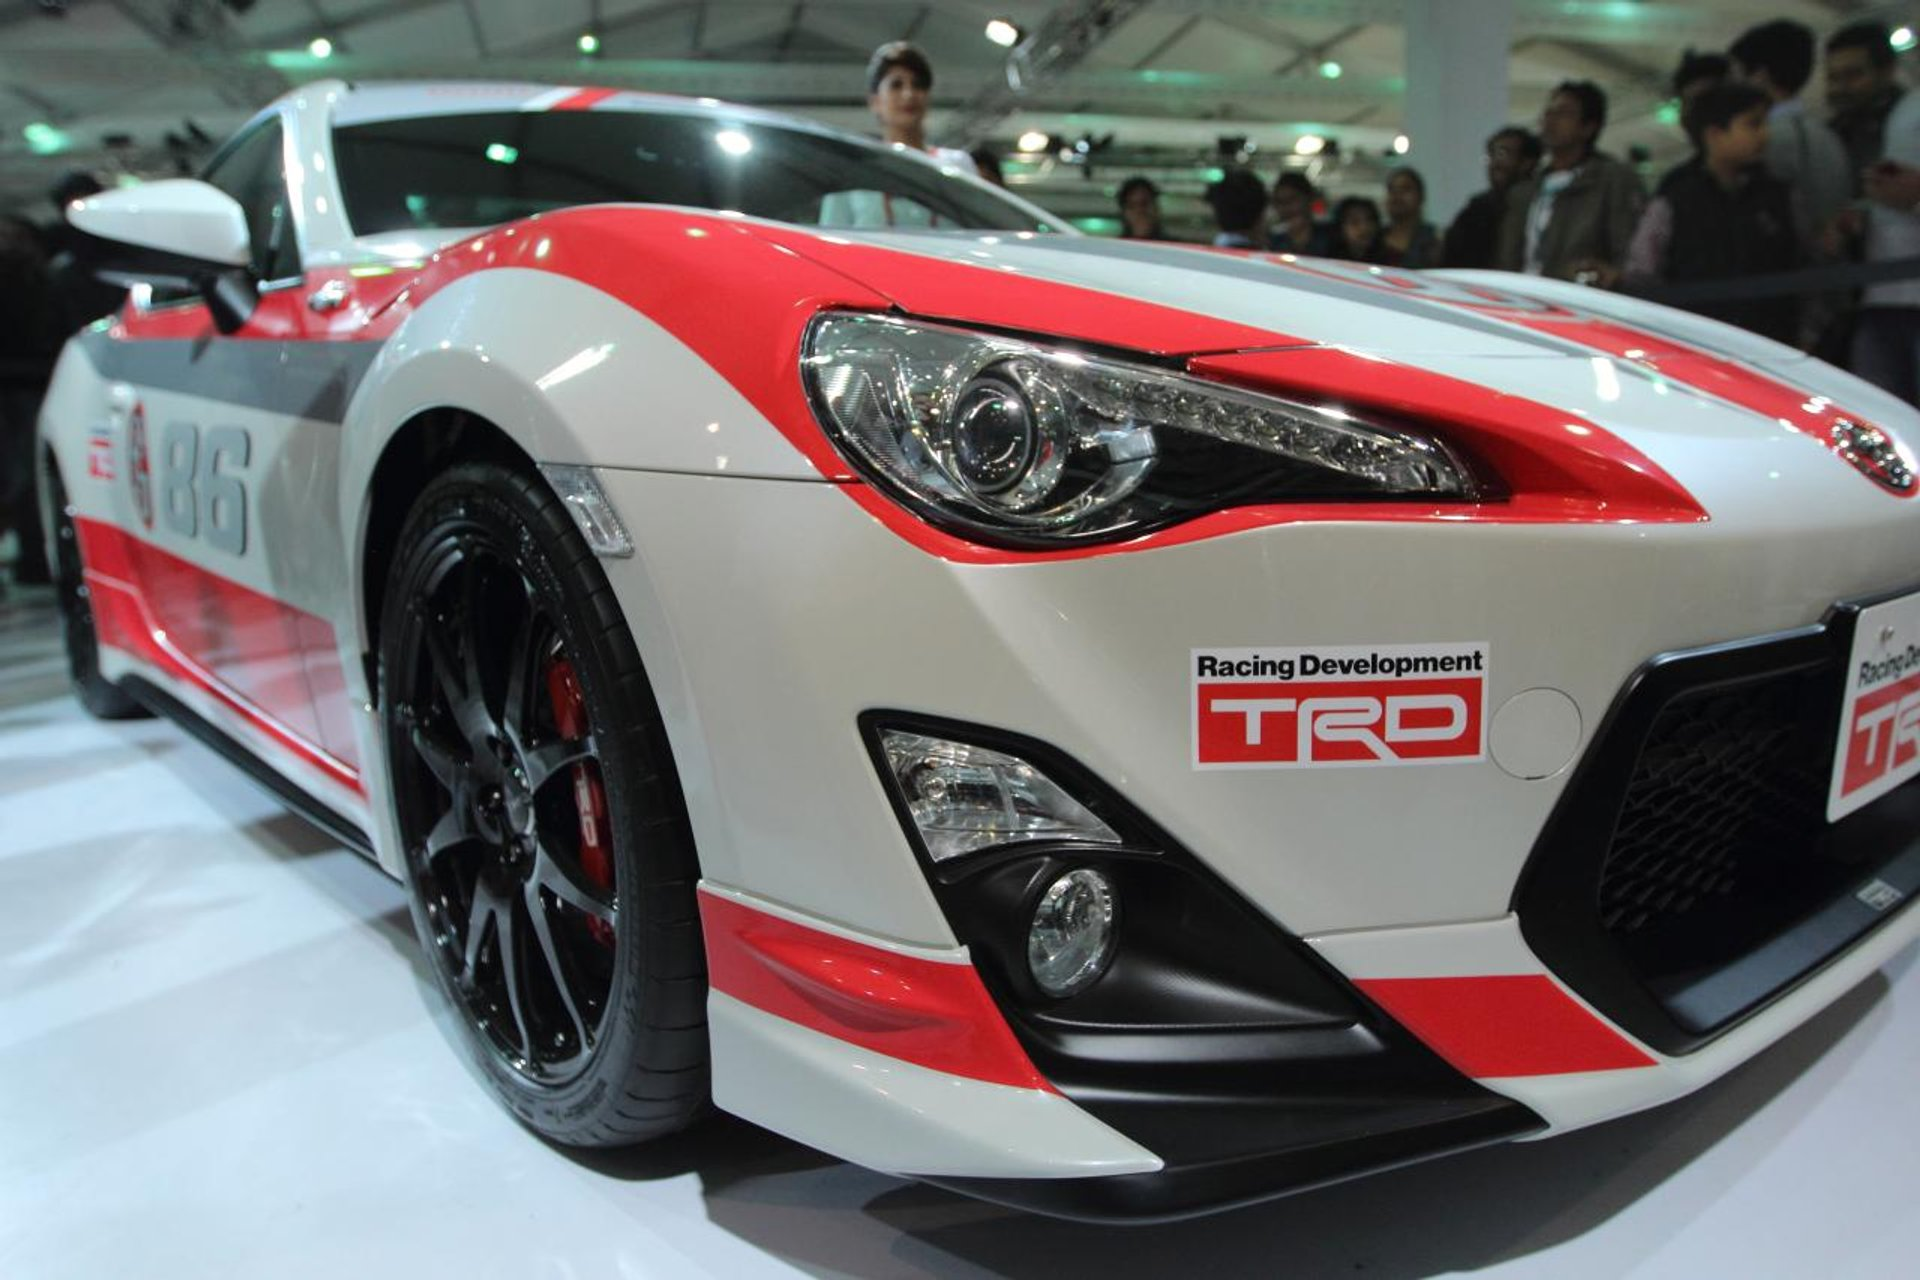 Best time to see Auto Expo in India 2020